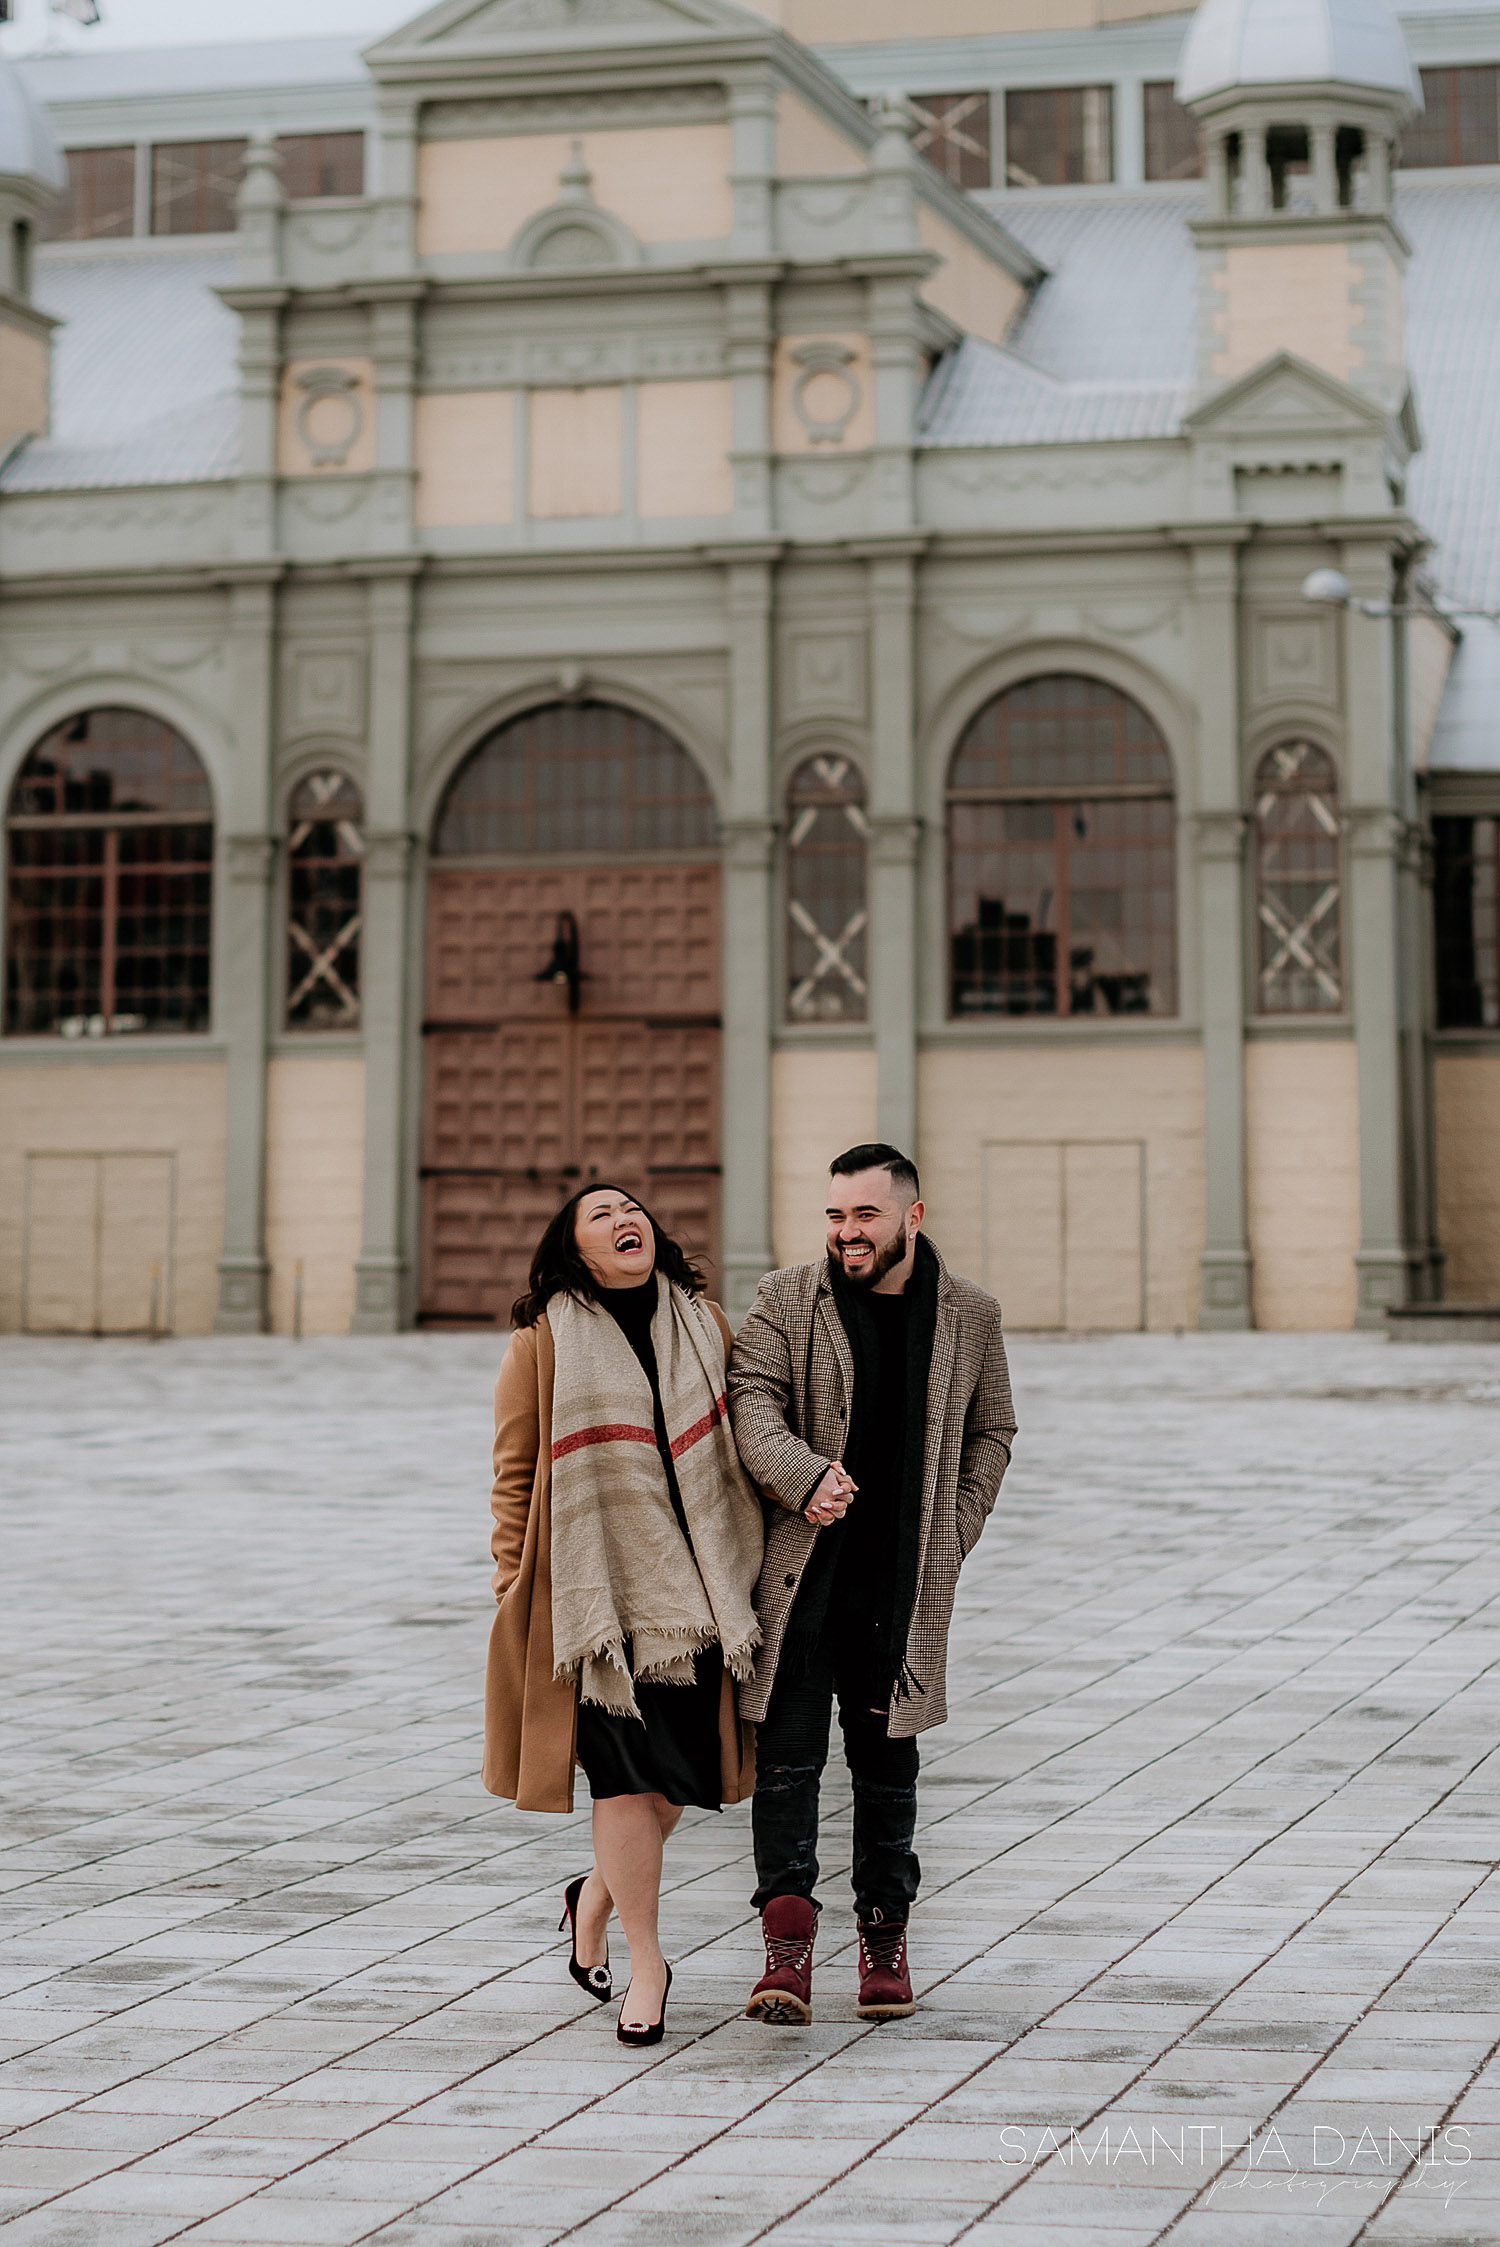 Engaged couple walking in front of Aberdeen Pavilion at Lansdowne Park Ottawa. Couple is laughing while walking arm in arm.